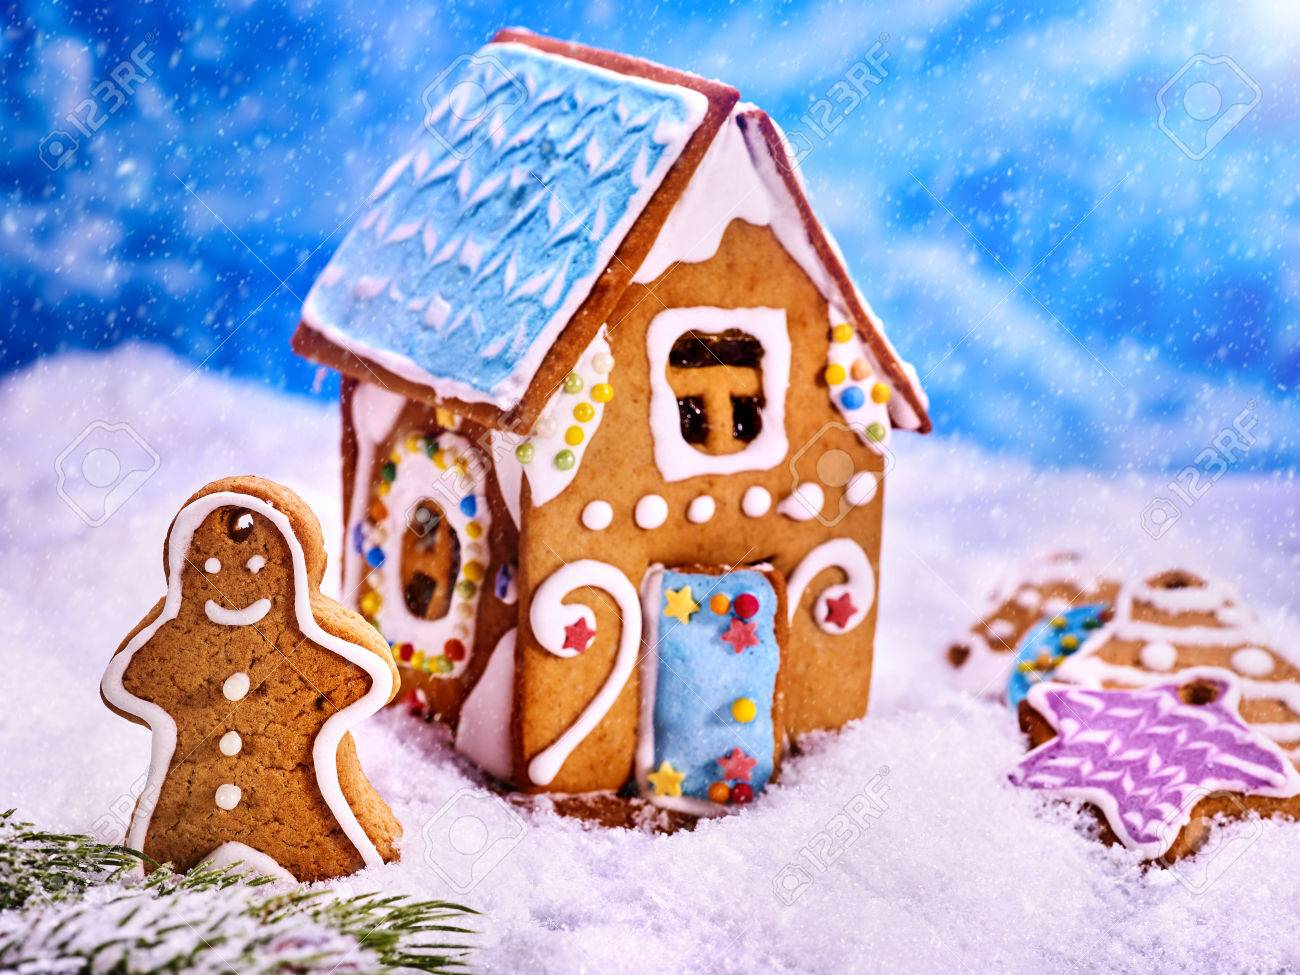 Christmas Gingerbread House Background.Christmas Gingerbread Man Close Up Outside Of Gingerbread House